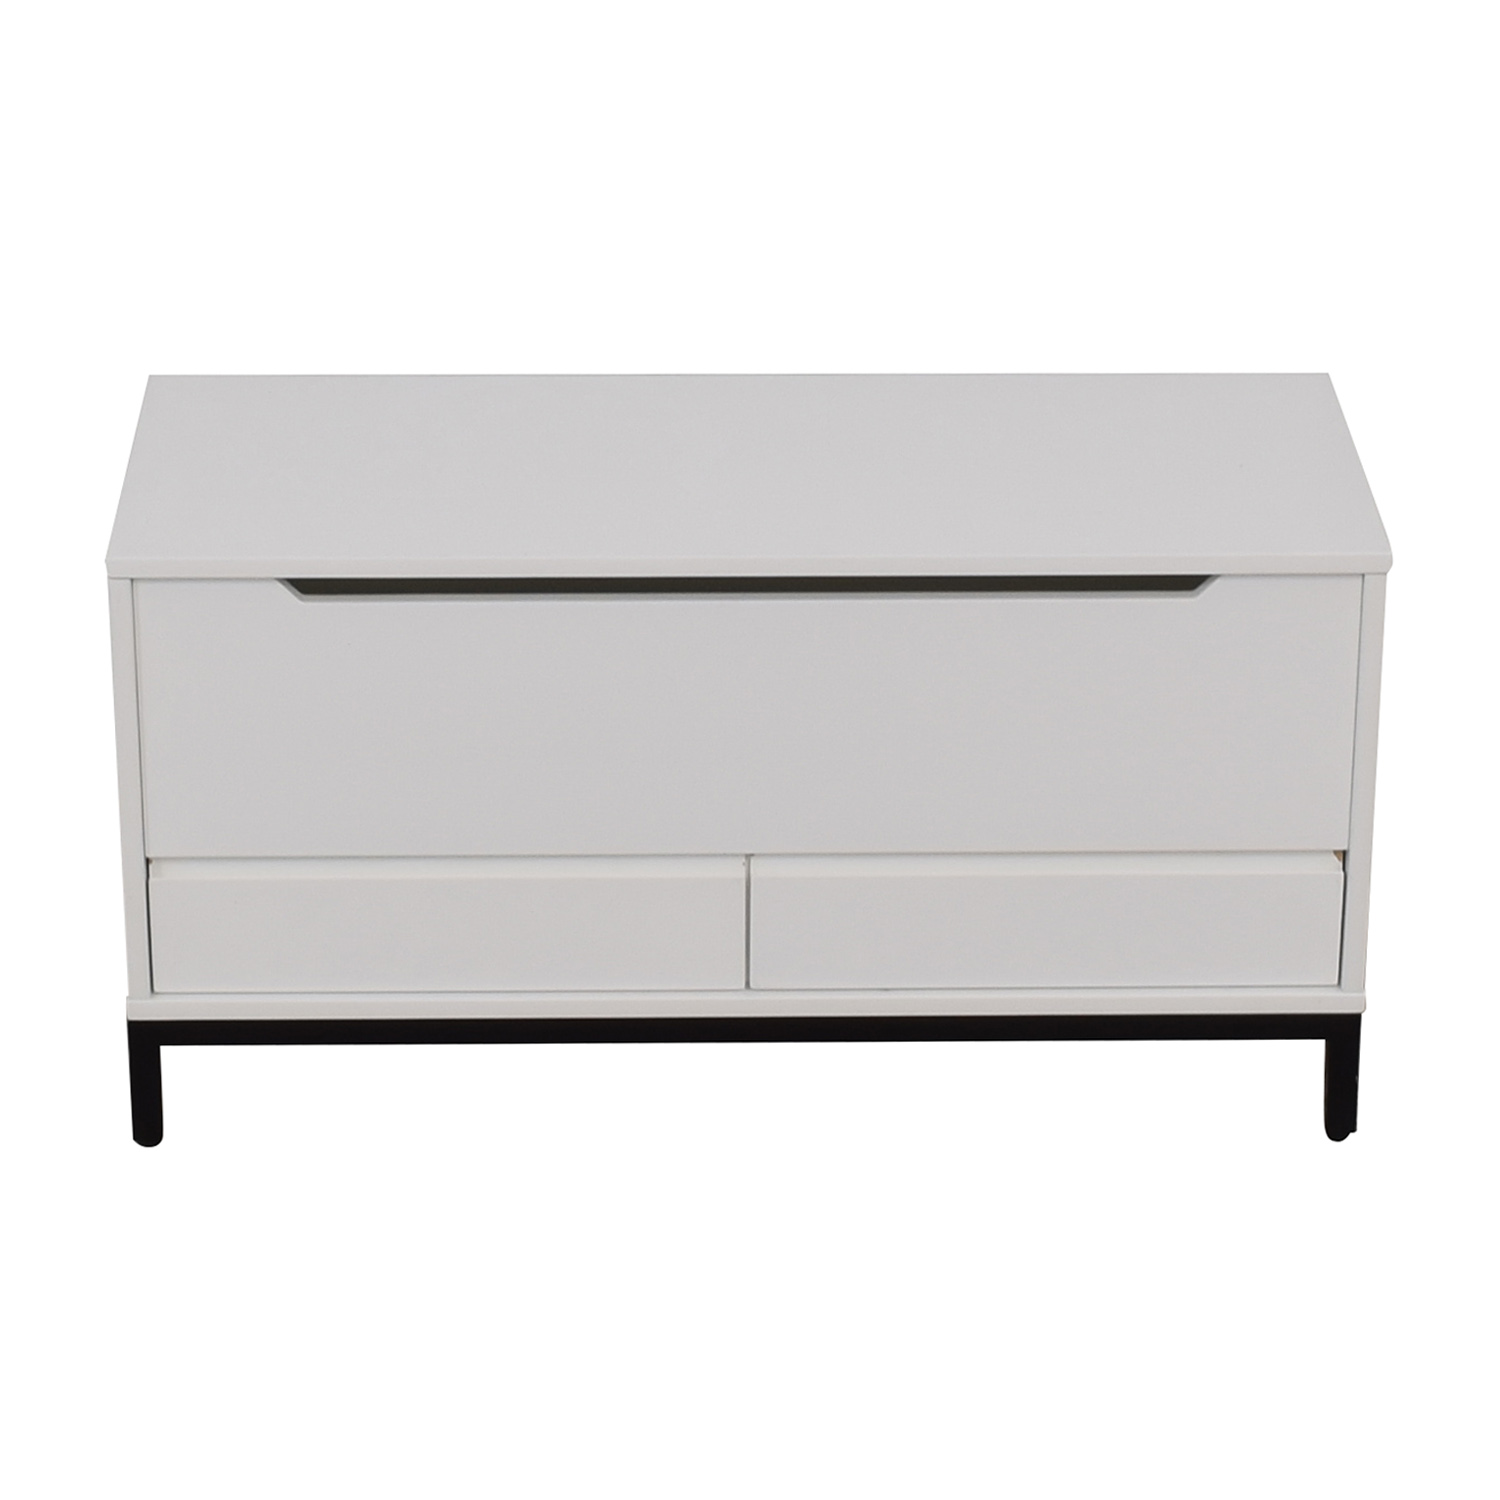 shop Land of Nod Land of Nod White Two-Drawer Storage Bench online